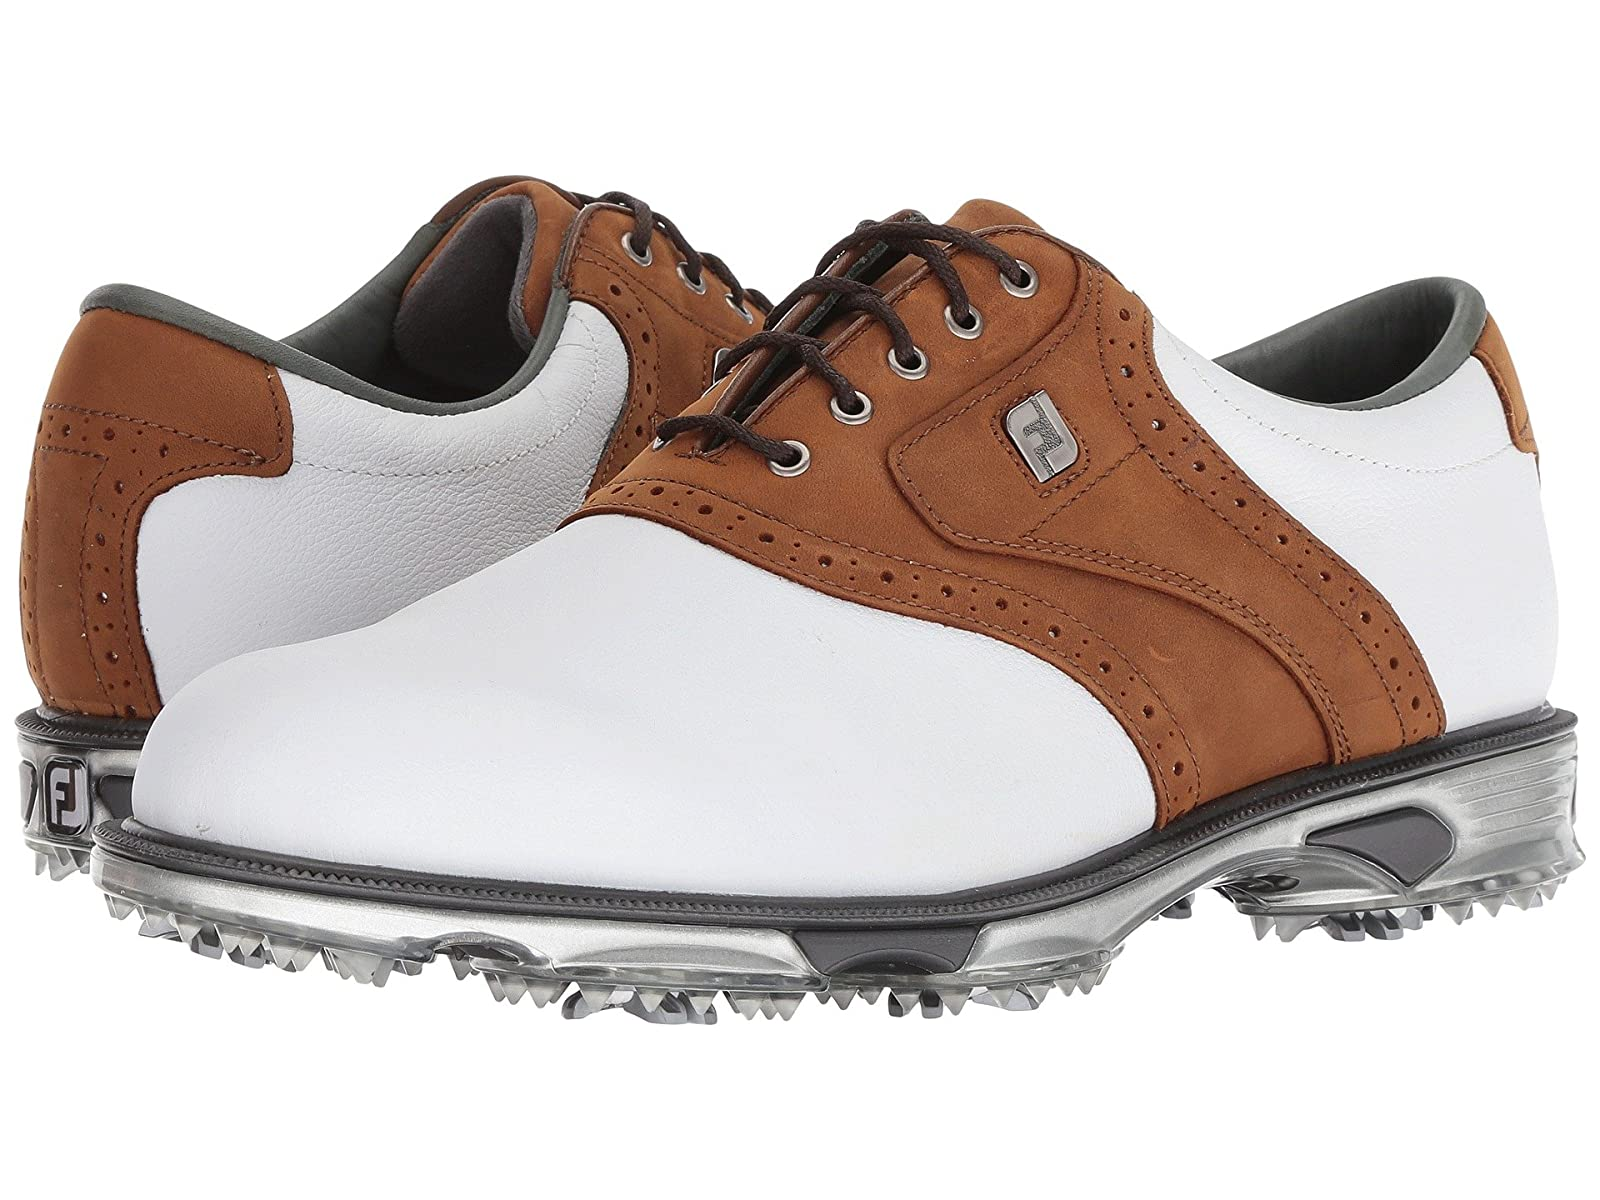 FootJoy DryJoys TourAtmospheric grades have affordable shoes